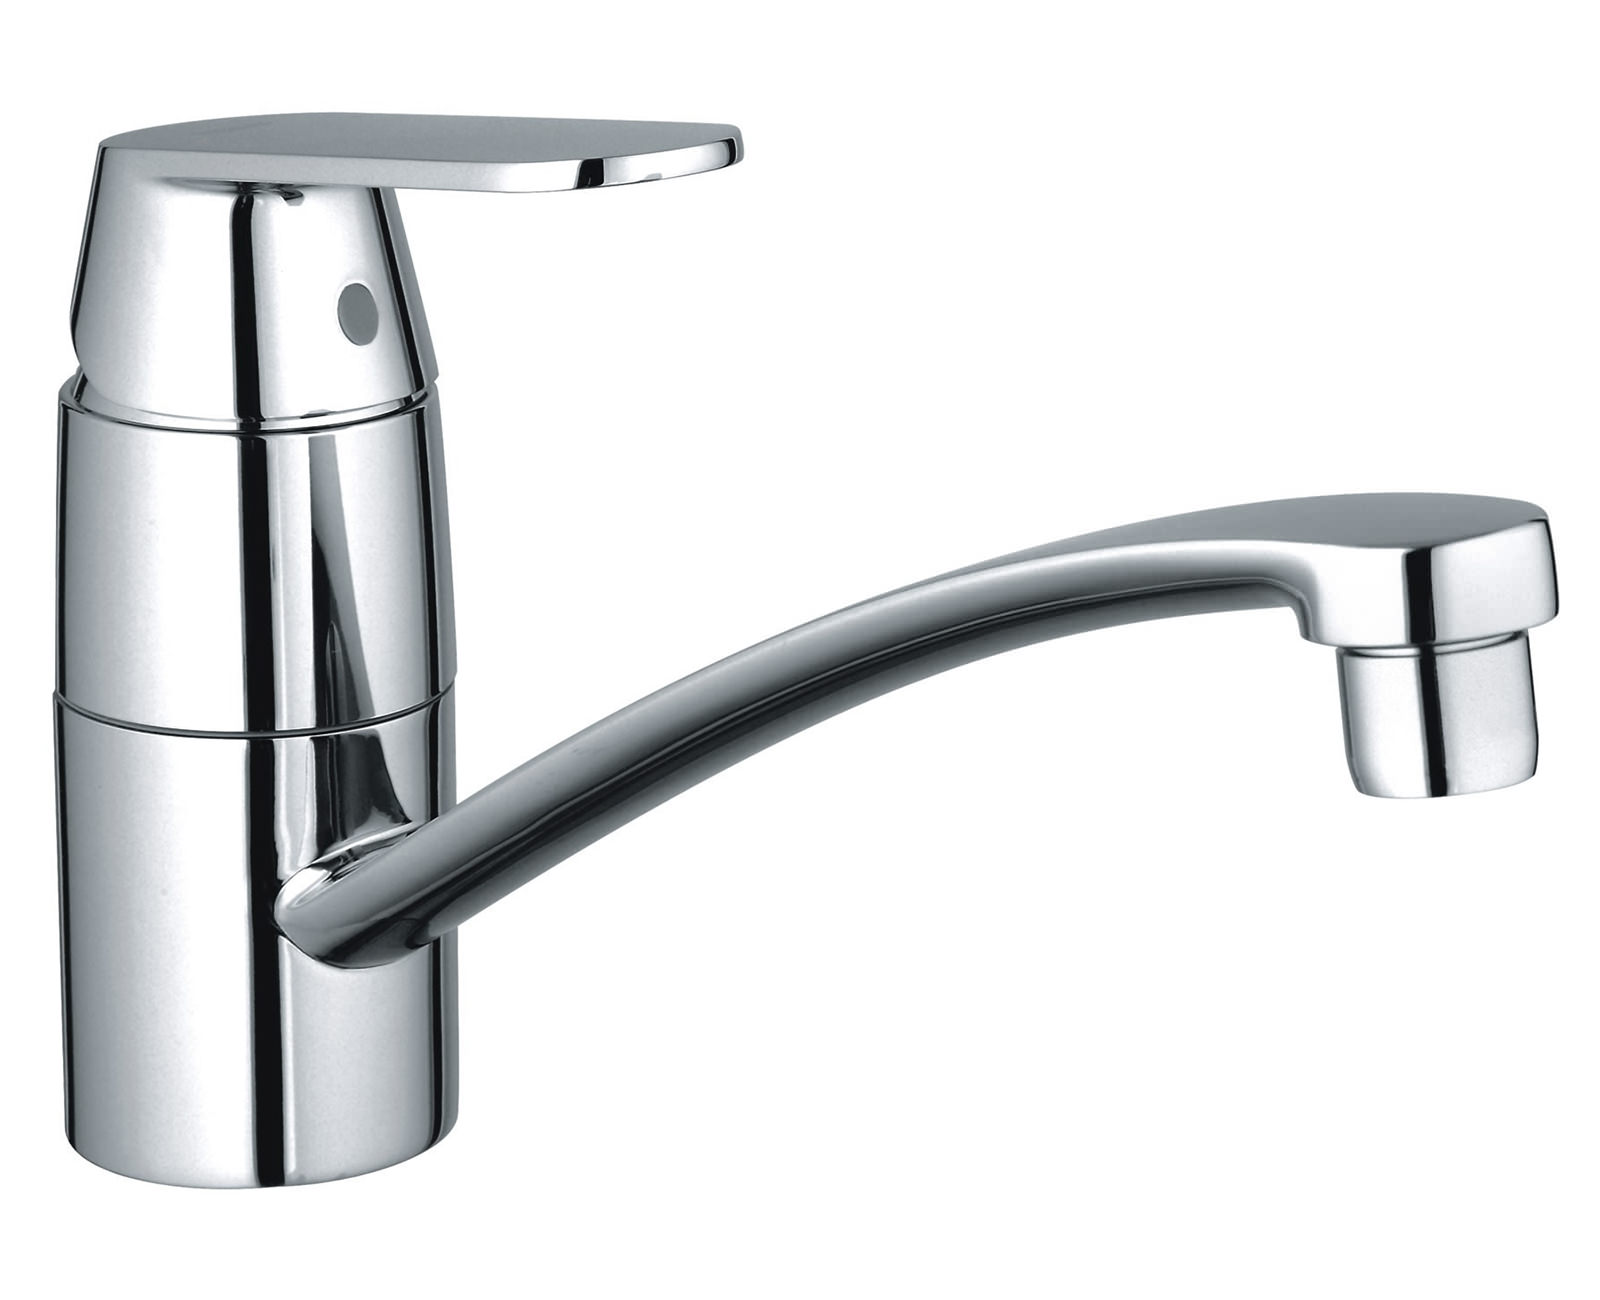 grohe eurosmart cosmopolitan low spout sink mixer tap. Black Bedroom Furniture Sets. Home Design Ideas